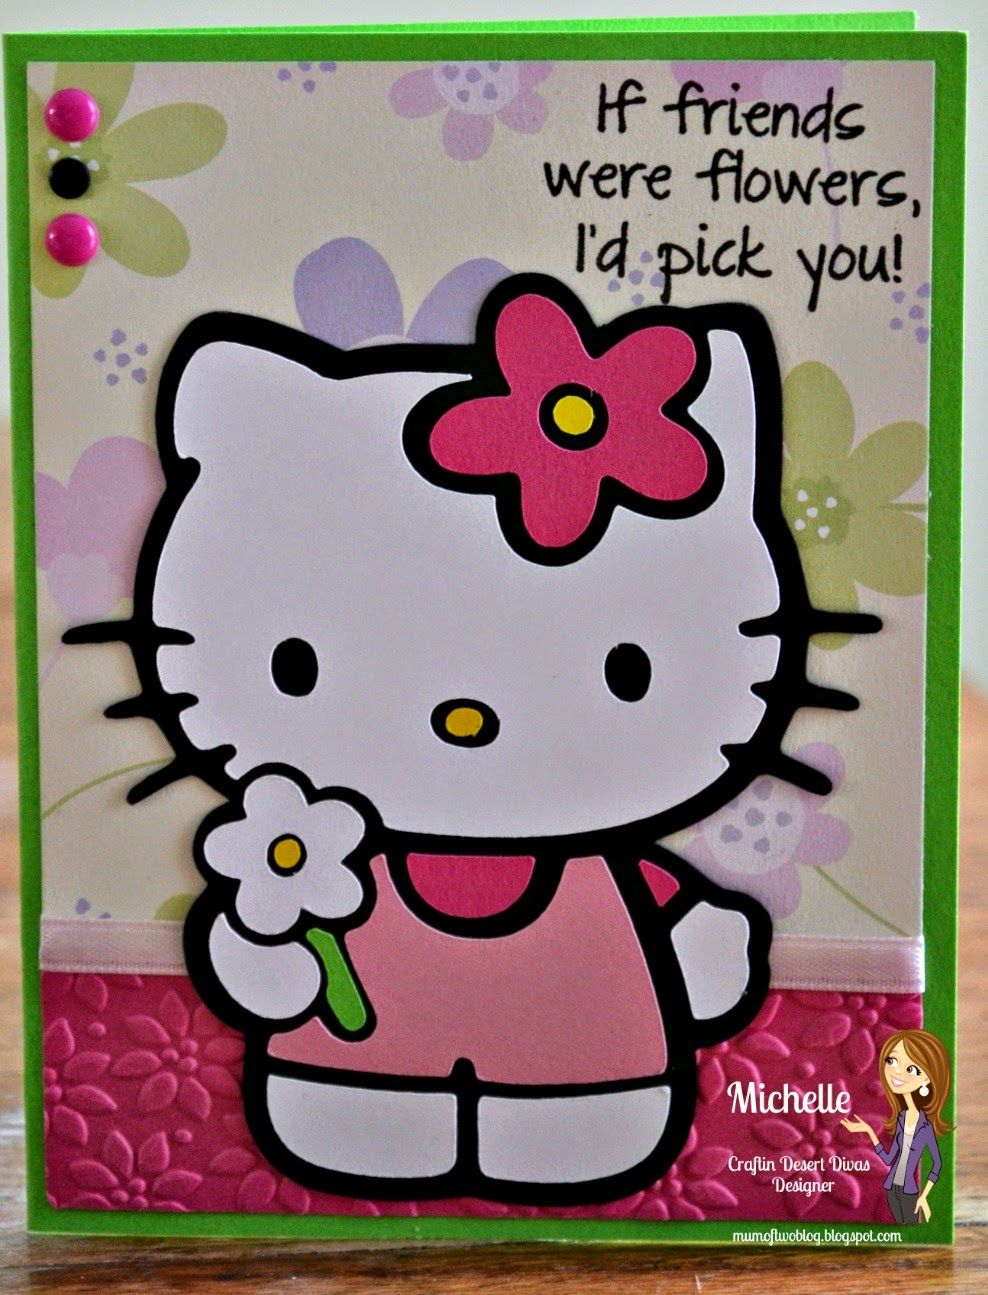 Hello kitty greetings cricut cartridge cricut pinterest cricut hello kitty greetings cricut cartridge m4hsunfo